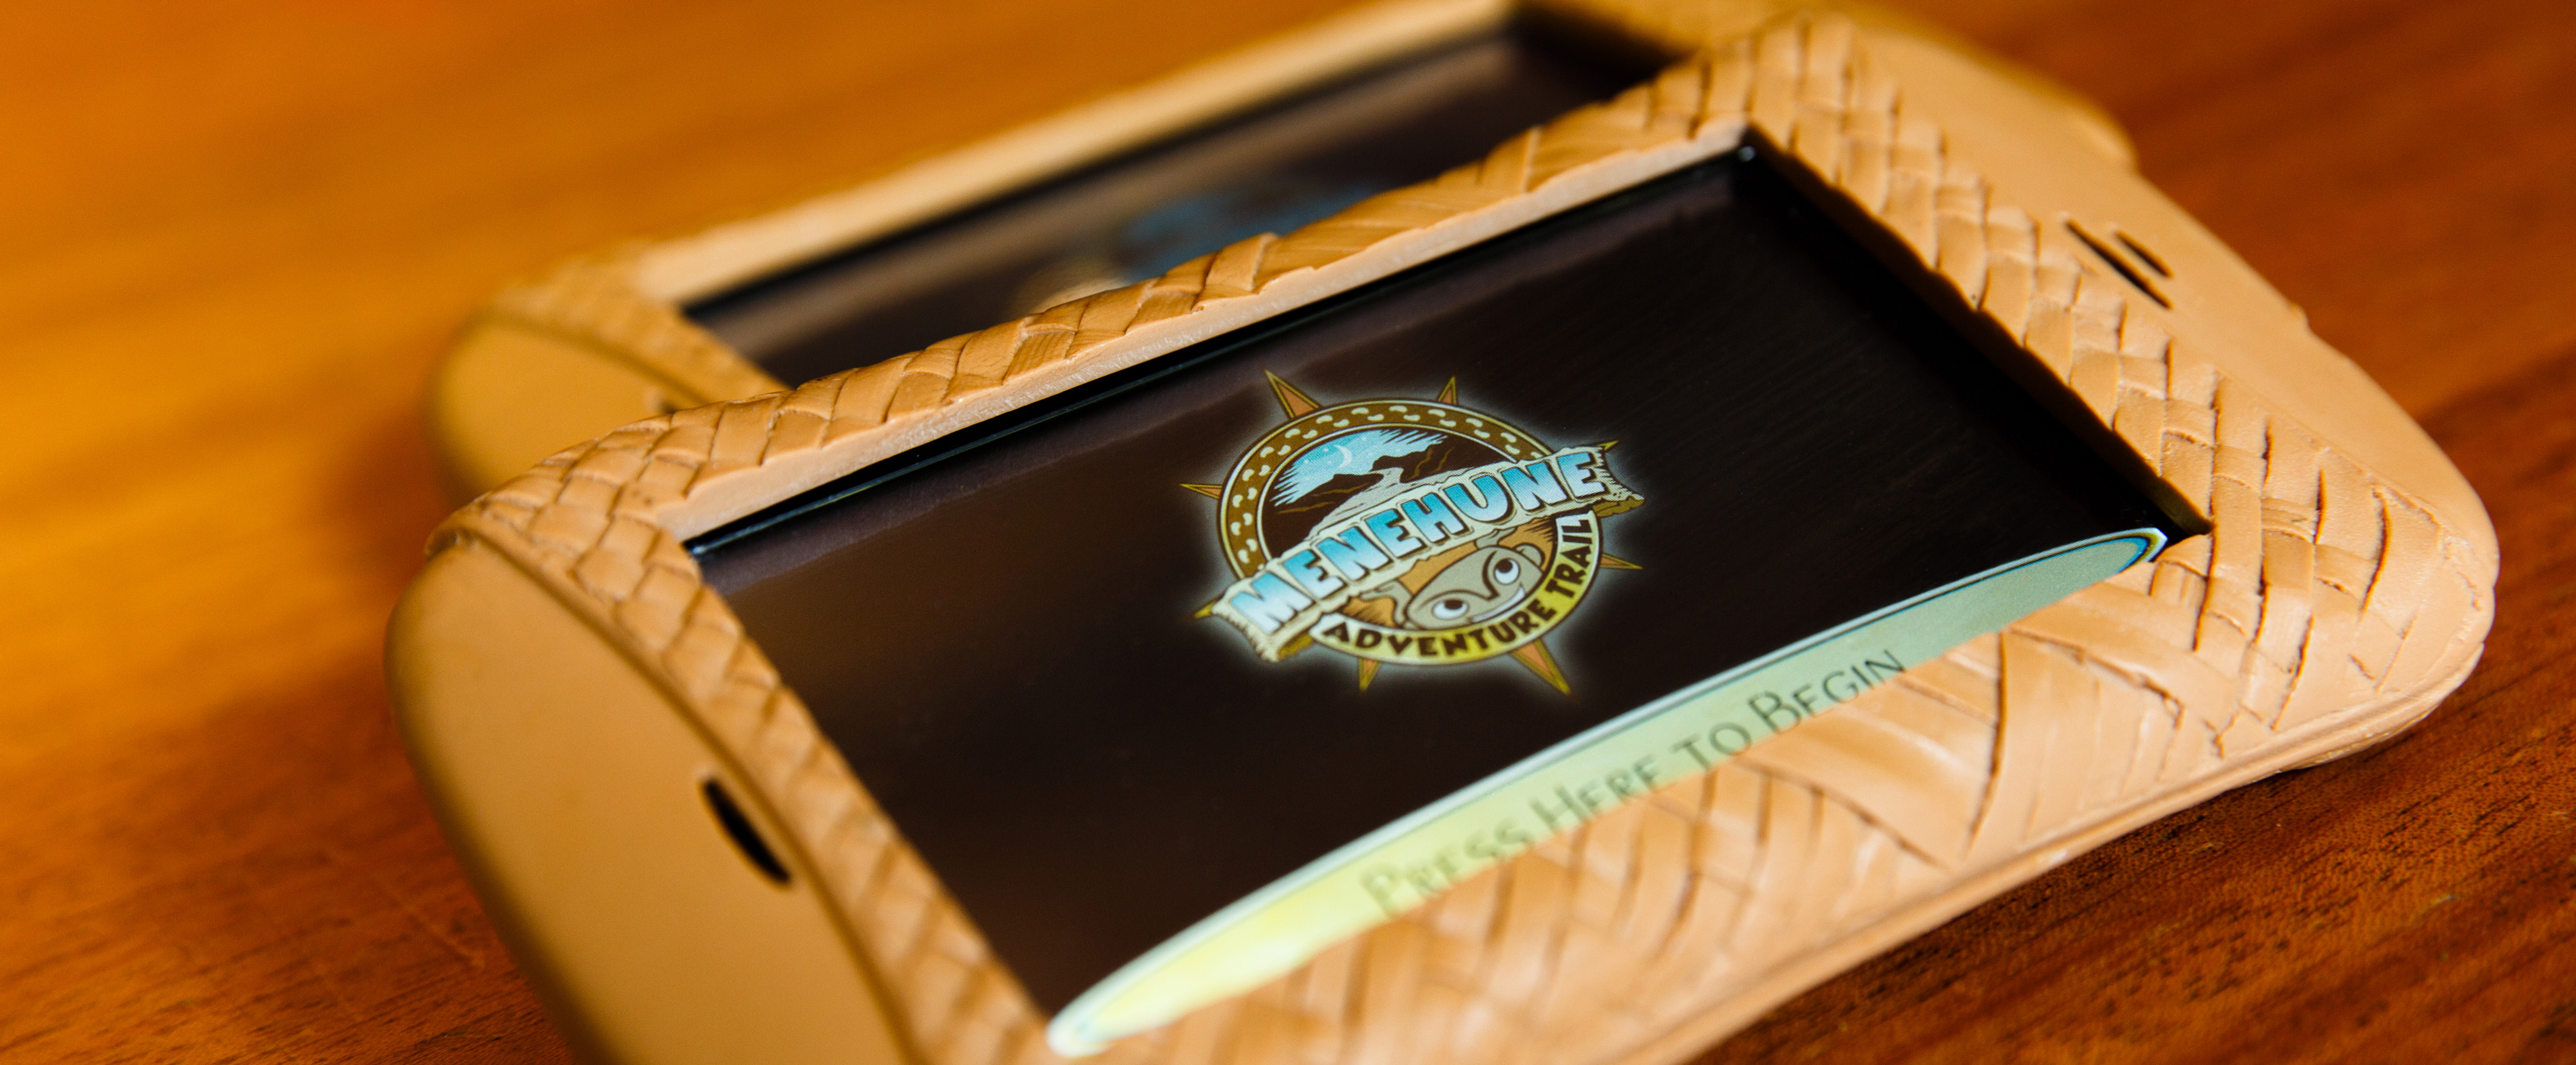 The handheld device that provides clues to young Guests on the Menehune Adventure Trail scavenger hunt